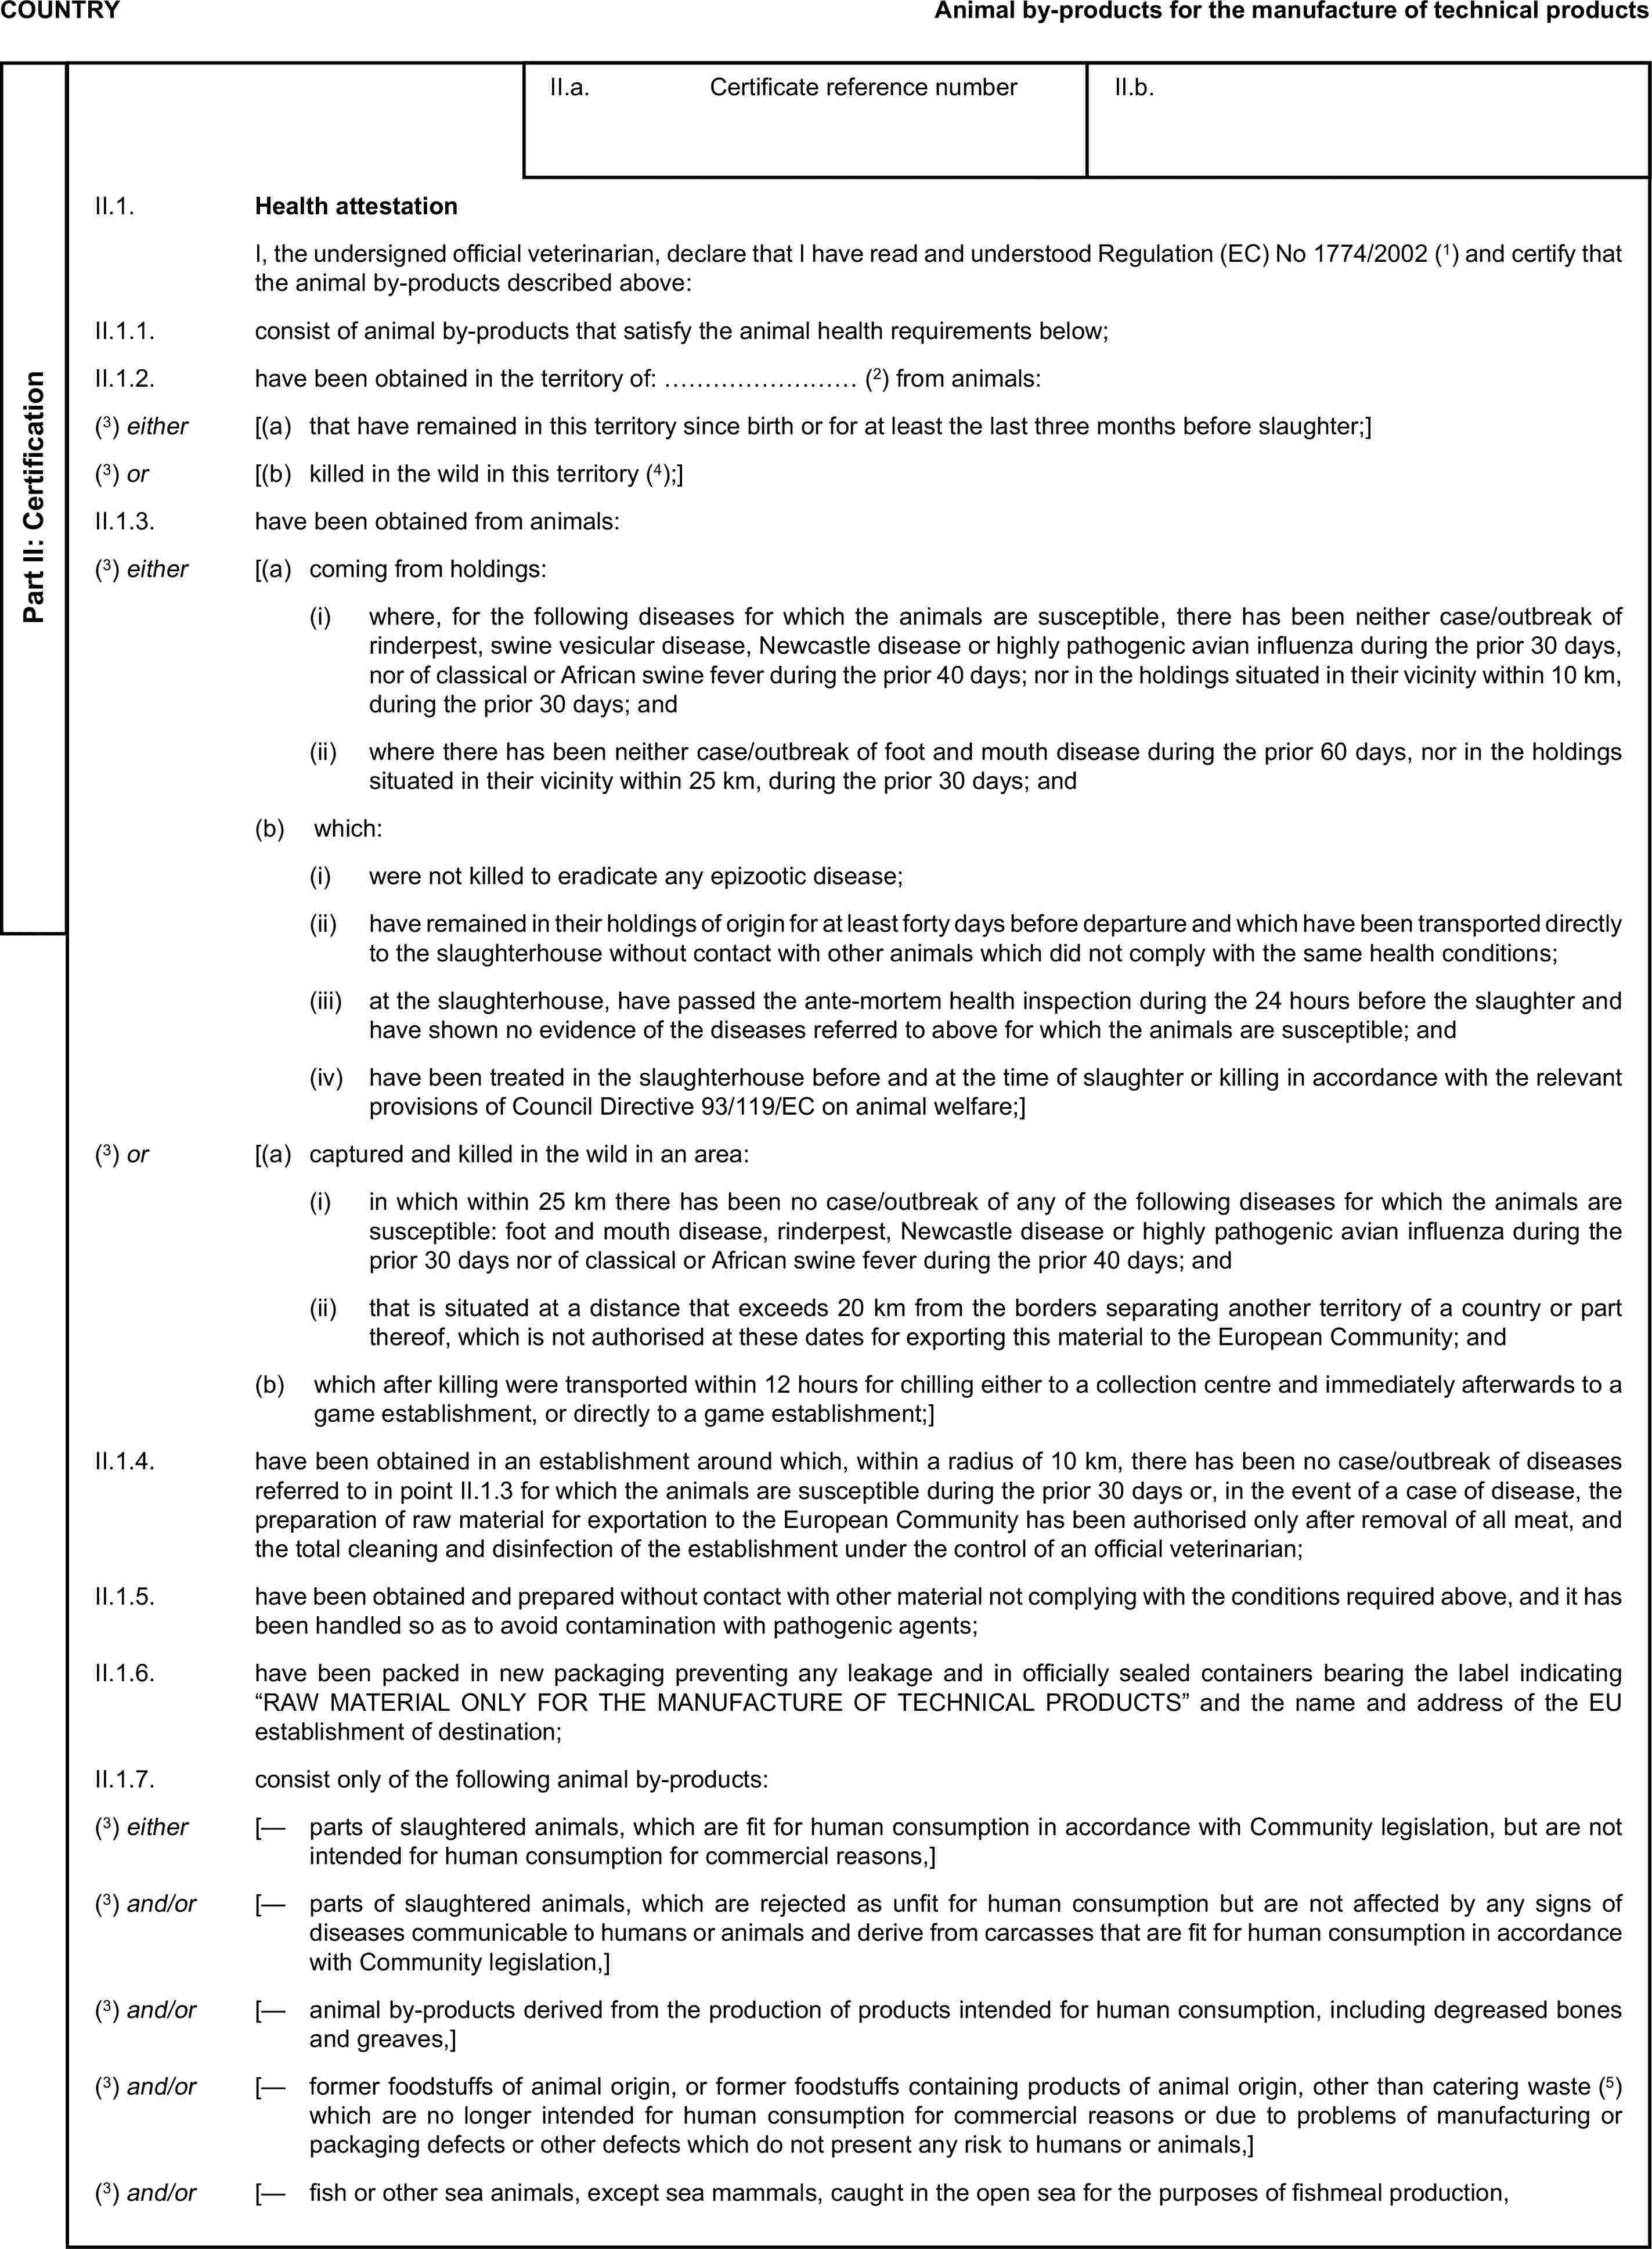 COUNTRYAnimal by-products for the manufacture of technical productsPart II: CertificationII.a. Certificate reference numberII.b.II.1. Health attestationI, the undersigned official veterinarian, declare that I have read and understood Regulation (EC) No1774/2002(1) and certify that the animal by-products described above:II.1.1. consist of animal by-products that satisfy the animal health requirements below;II.1.2. have been obtained in the territory of: ……………………(2) from animals:(3) either [(a) that have remained in this territory since birth or for at least the last three months before slaughter;](3) or [(b) killed in the wild in this territory(4);]II.1.3. have been obtained from animals:(3) either [(a) coming from holdings:(i) where, for the following diseases for which the animals are susceptible, there has been neither case/outbreak of rinderpest, swine vesicular disease, Newcastle disease or highly pathogenic avian influenza during the prior 30 days, nor of classical or African swine fever during the prior 40 days; nor in the holdings situated in their vicinity within 10 km, during the prior 30 days; and(ii) where there has been neither case/outbreak of foot and mouth disease during the prior 60 days, nor in the holdings situated in their vicinity within 25 km, during the prior 30 days; and(b) which:(i) were not killed to eradicate any epizootic disease;(ii) have remained in their holdings of origin for at least forty days before departure and which have been transported directly to the slaughterhouse without contact with other animals which did not comply with the same health conditions;(iii) at the slaughterhouse, have passed the ante-mortem health inspection during the 24 hours before the slaughter and have shown no evidence of the diseases referred to above for which the animals are susceptible; and(iv) have been treated in the slaughterhouse before and at the time of slaughter or killing in accordance with the relevant provisions of Council Directive 93/119/